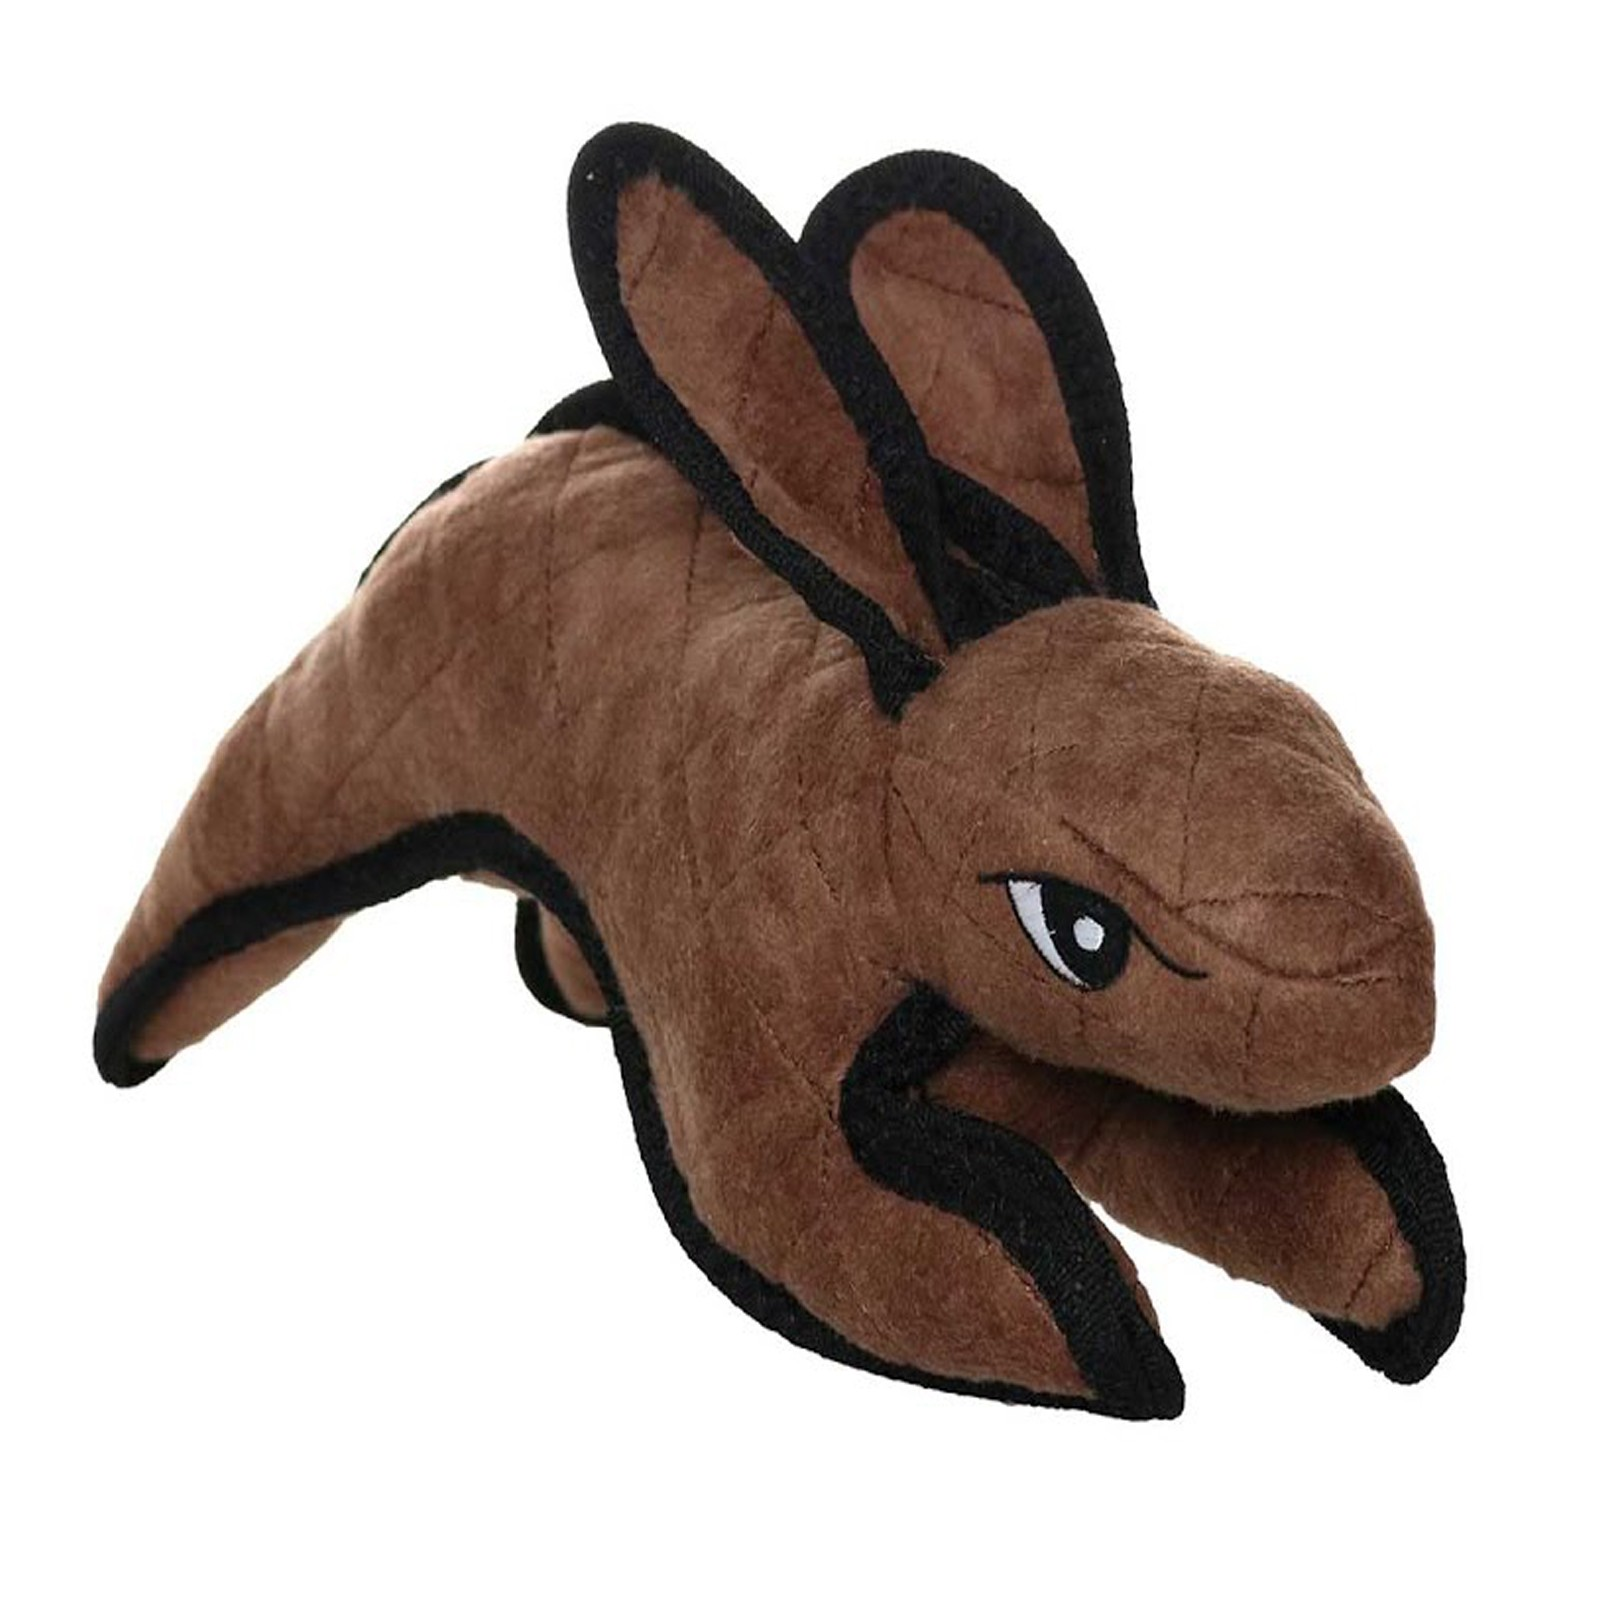 Tuffy Barnyard JR Rabbit Brown Tough Soft Toy for Dogs